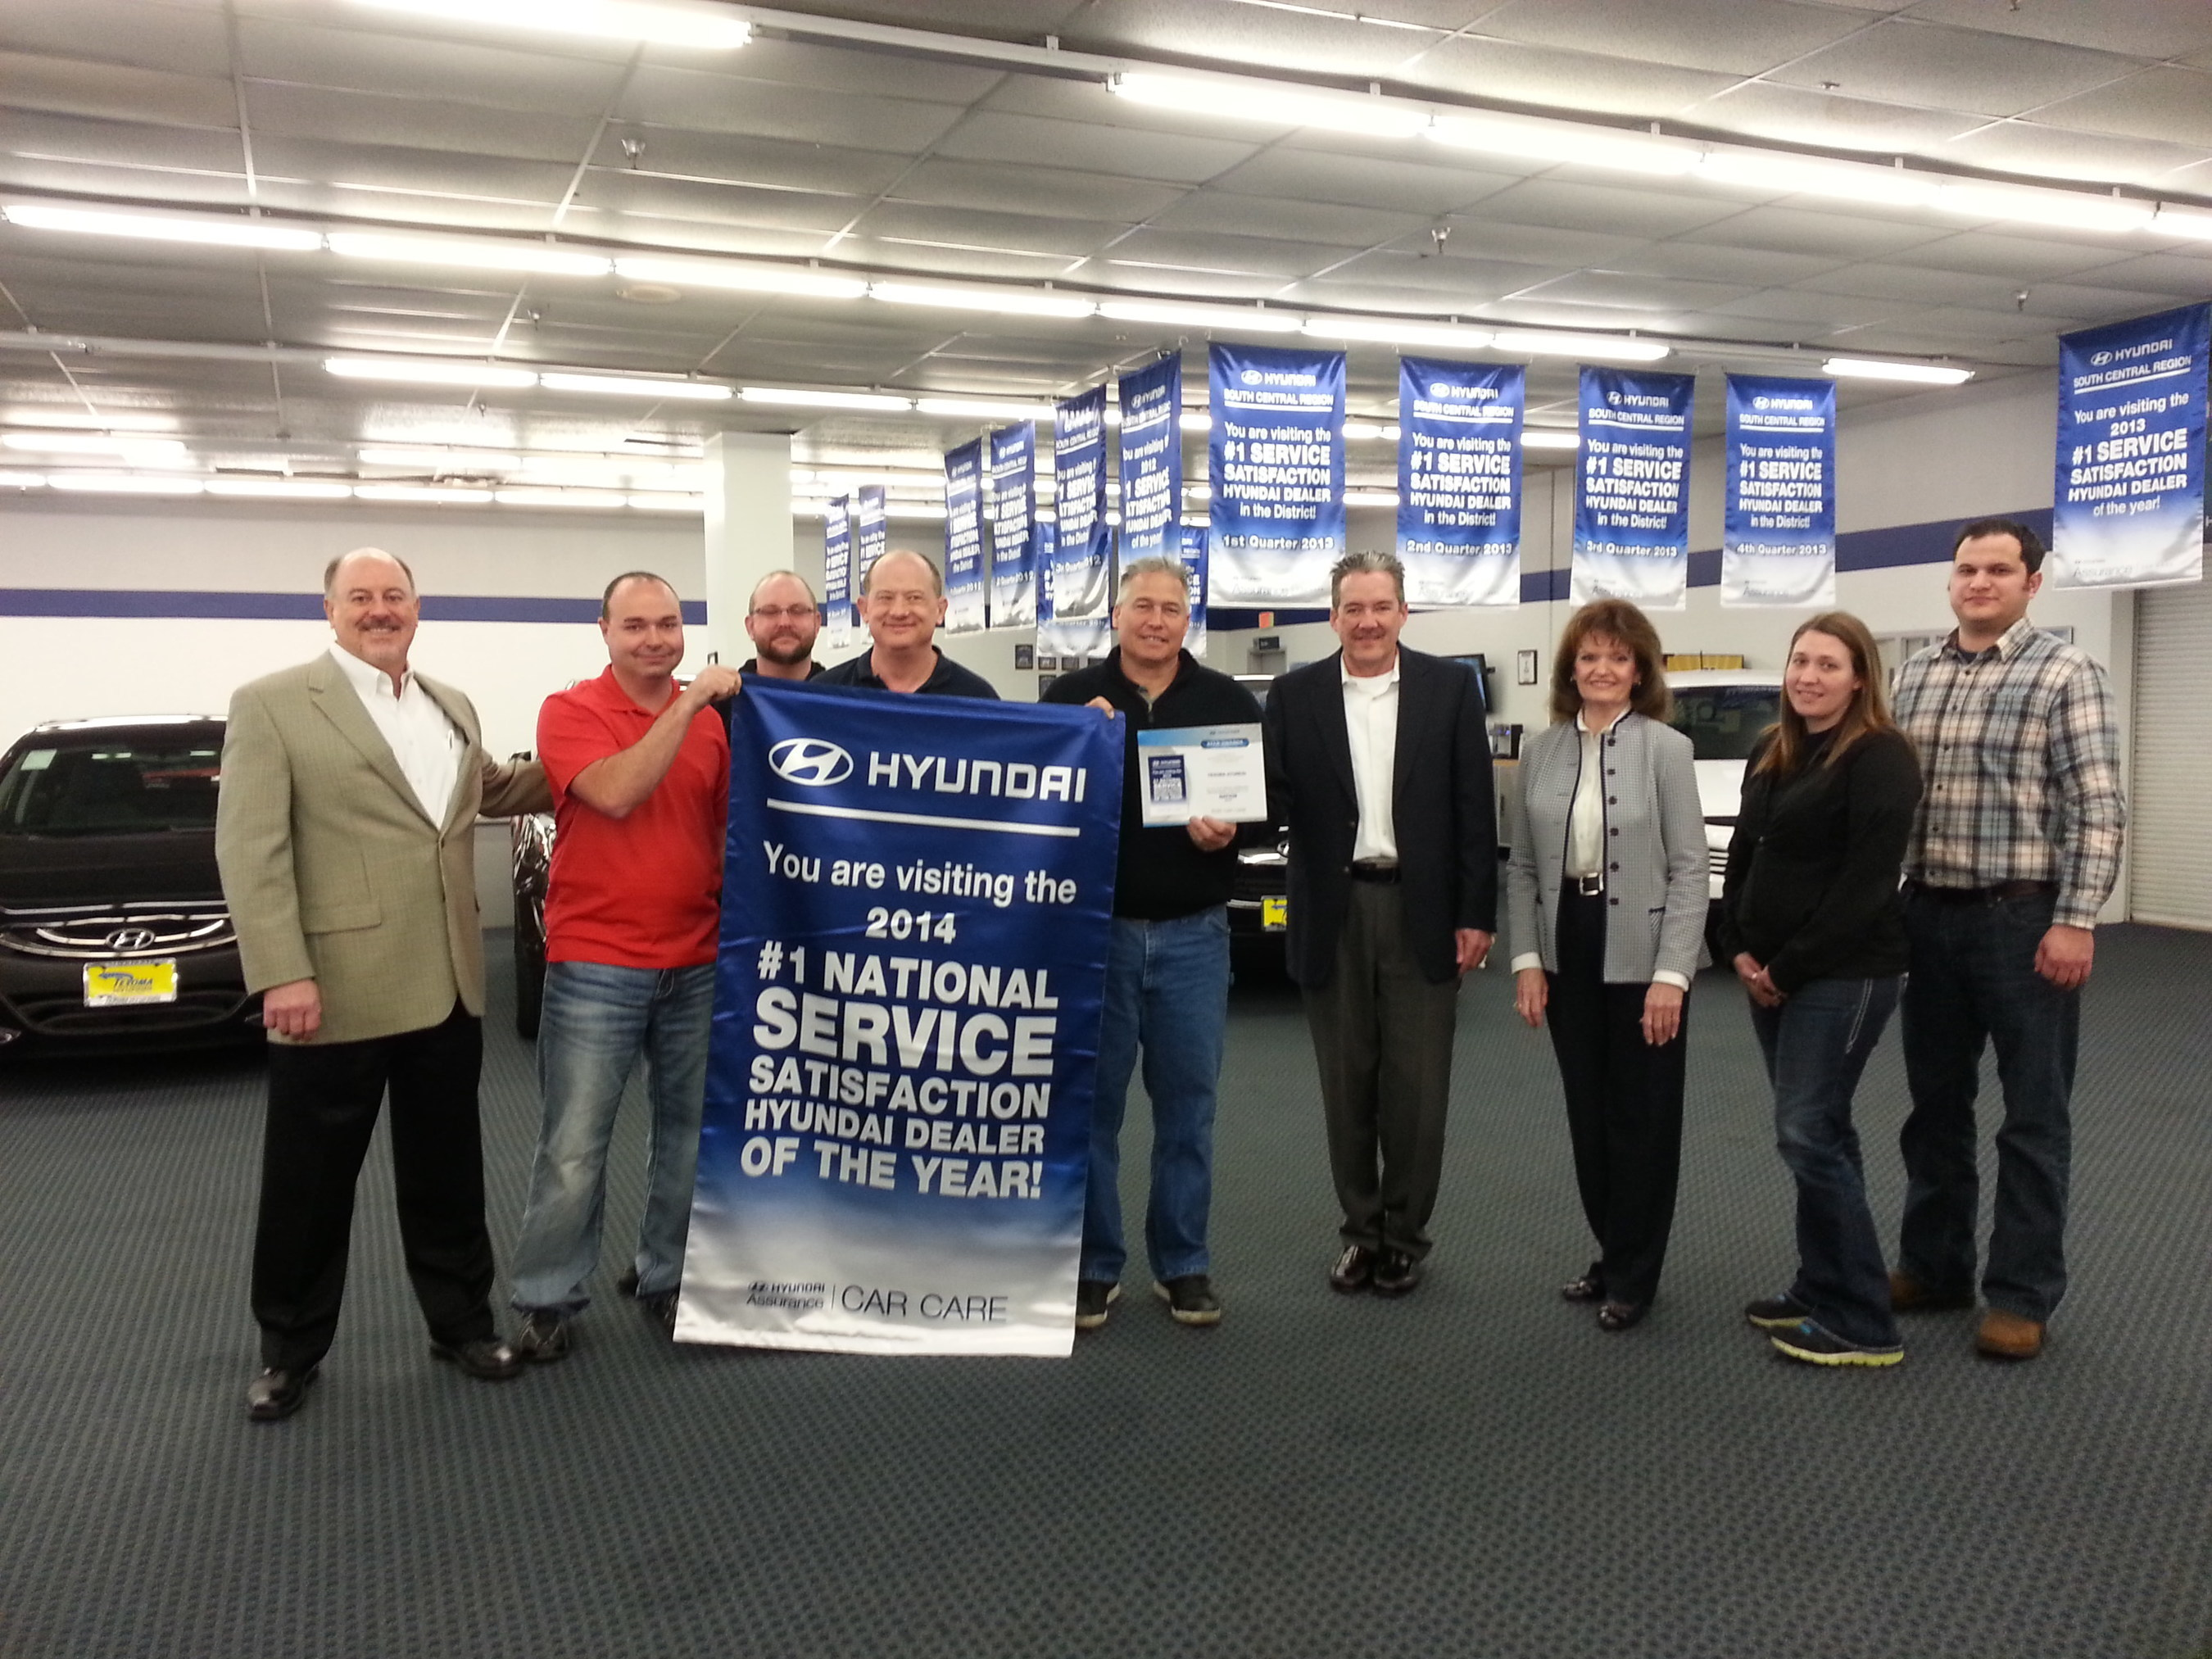 TEXOMA HYUNDAI LEADS IN SERVICE CUSTOMER SATISFACTION FOR THE SECOND YEAR IN A ROW